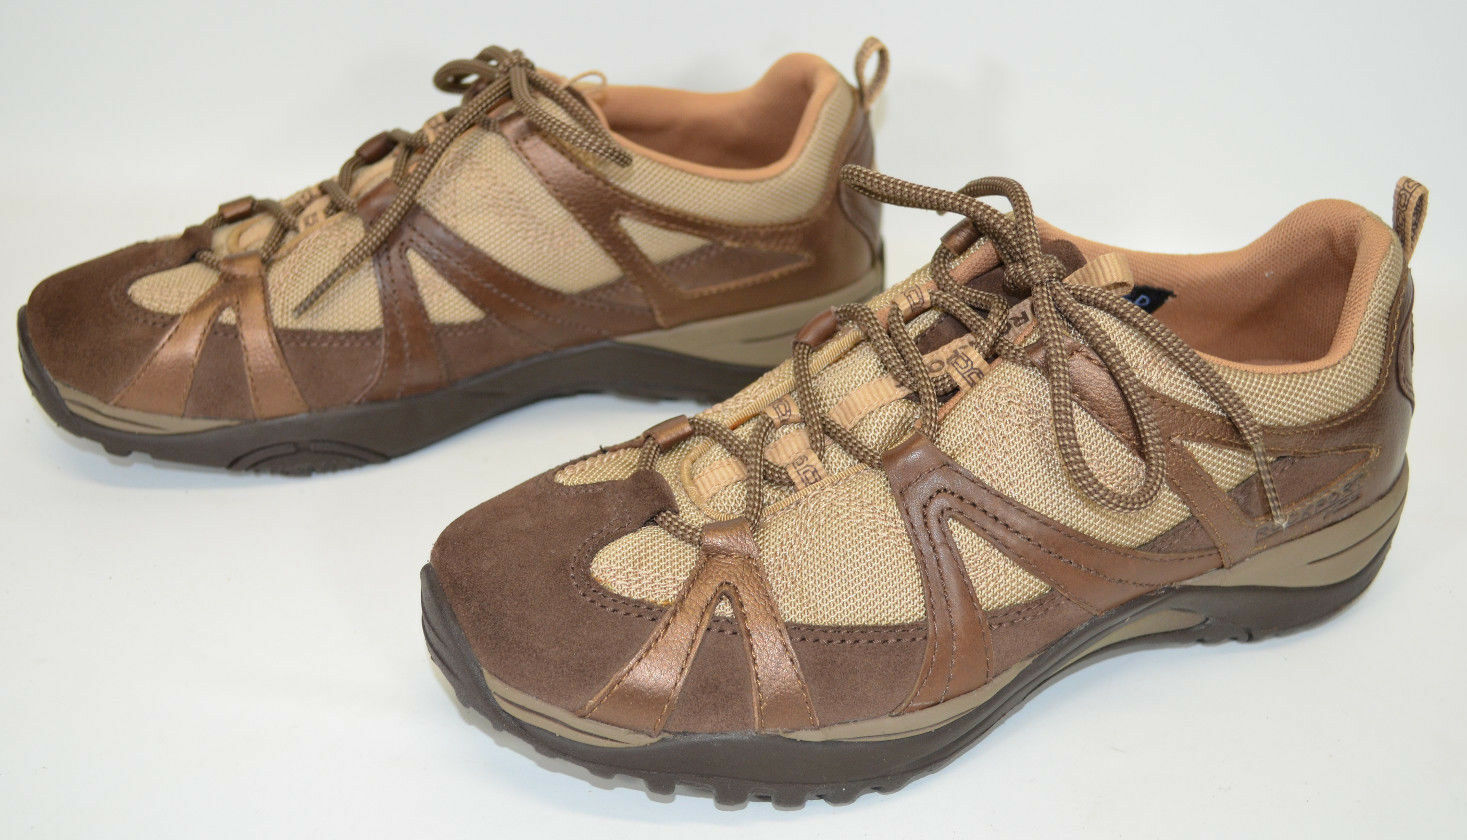 Rockport XC5 Sneakers Walking Brown/Tan Hydro-Shield Waterproof femmes  8.5M